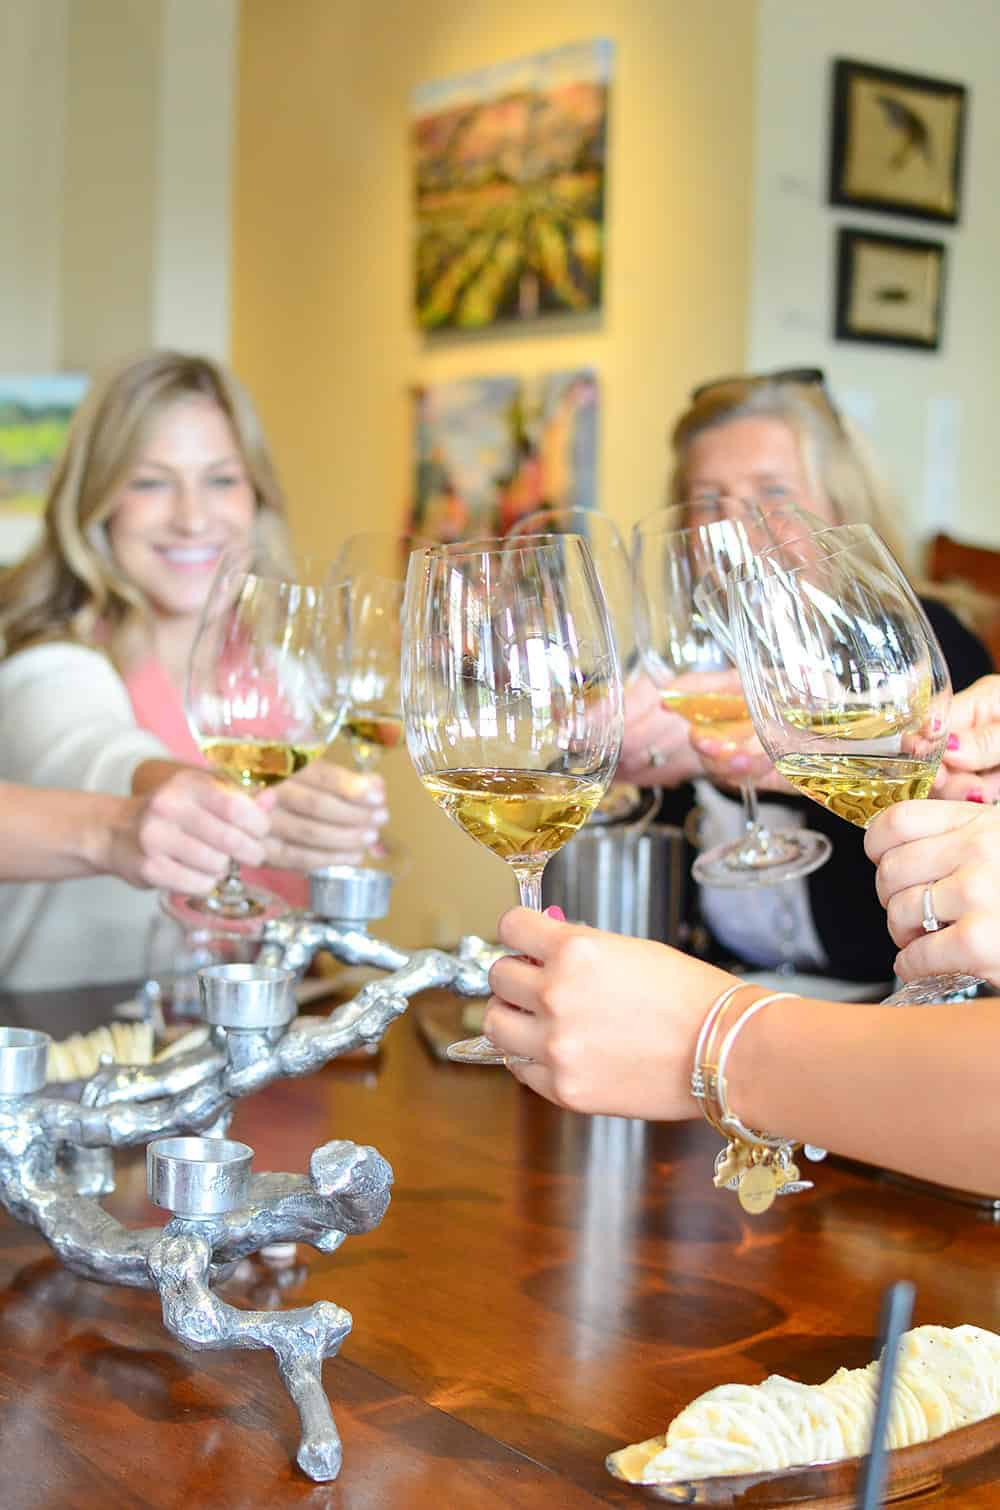 Top 10 things to do in Napa Valley | www.delishknowledge.com